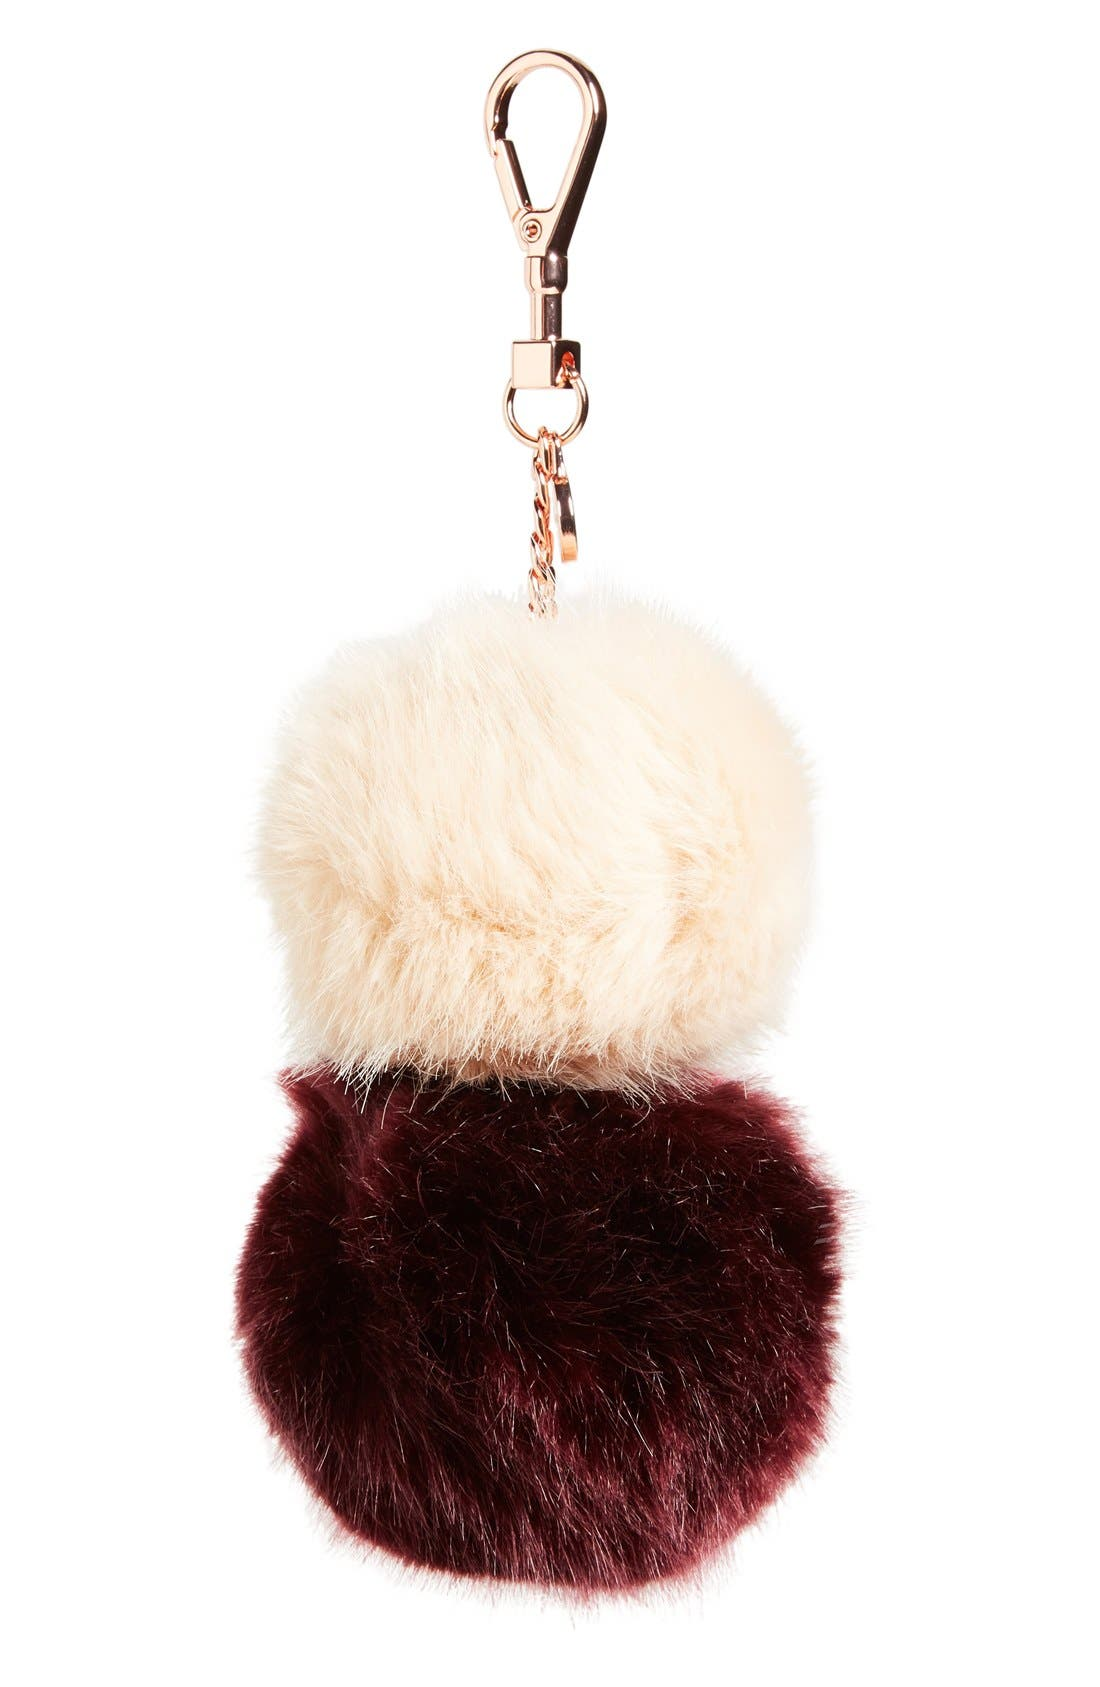 Main Image - Ted Baker London Faux Fur Bag Charm